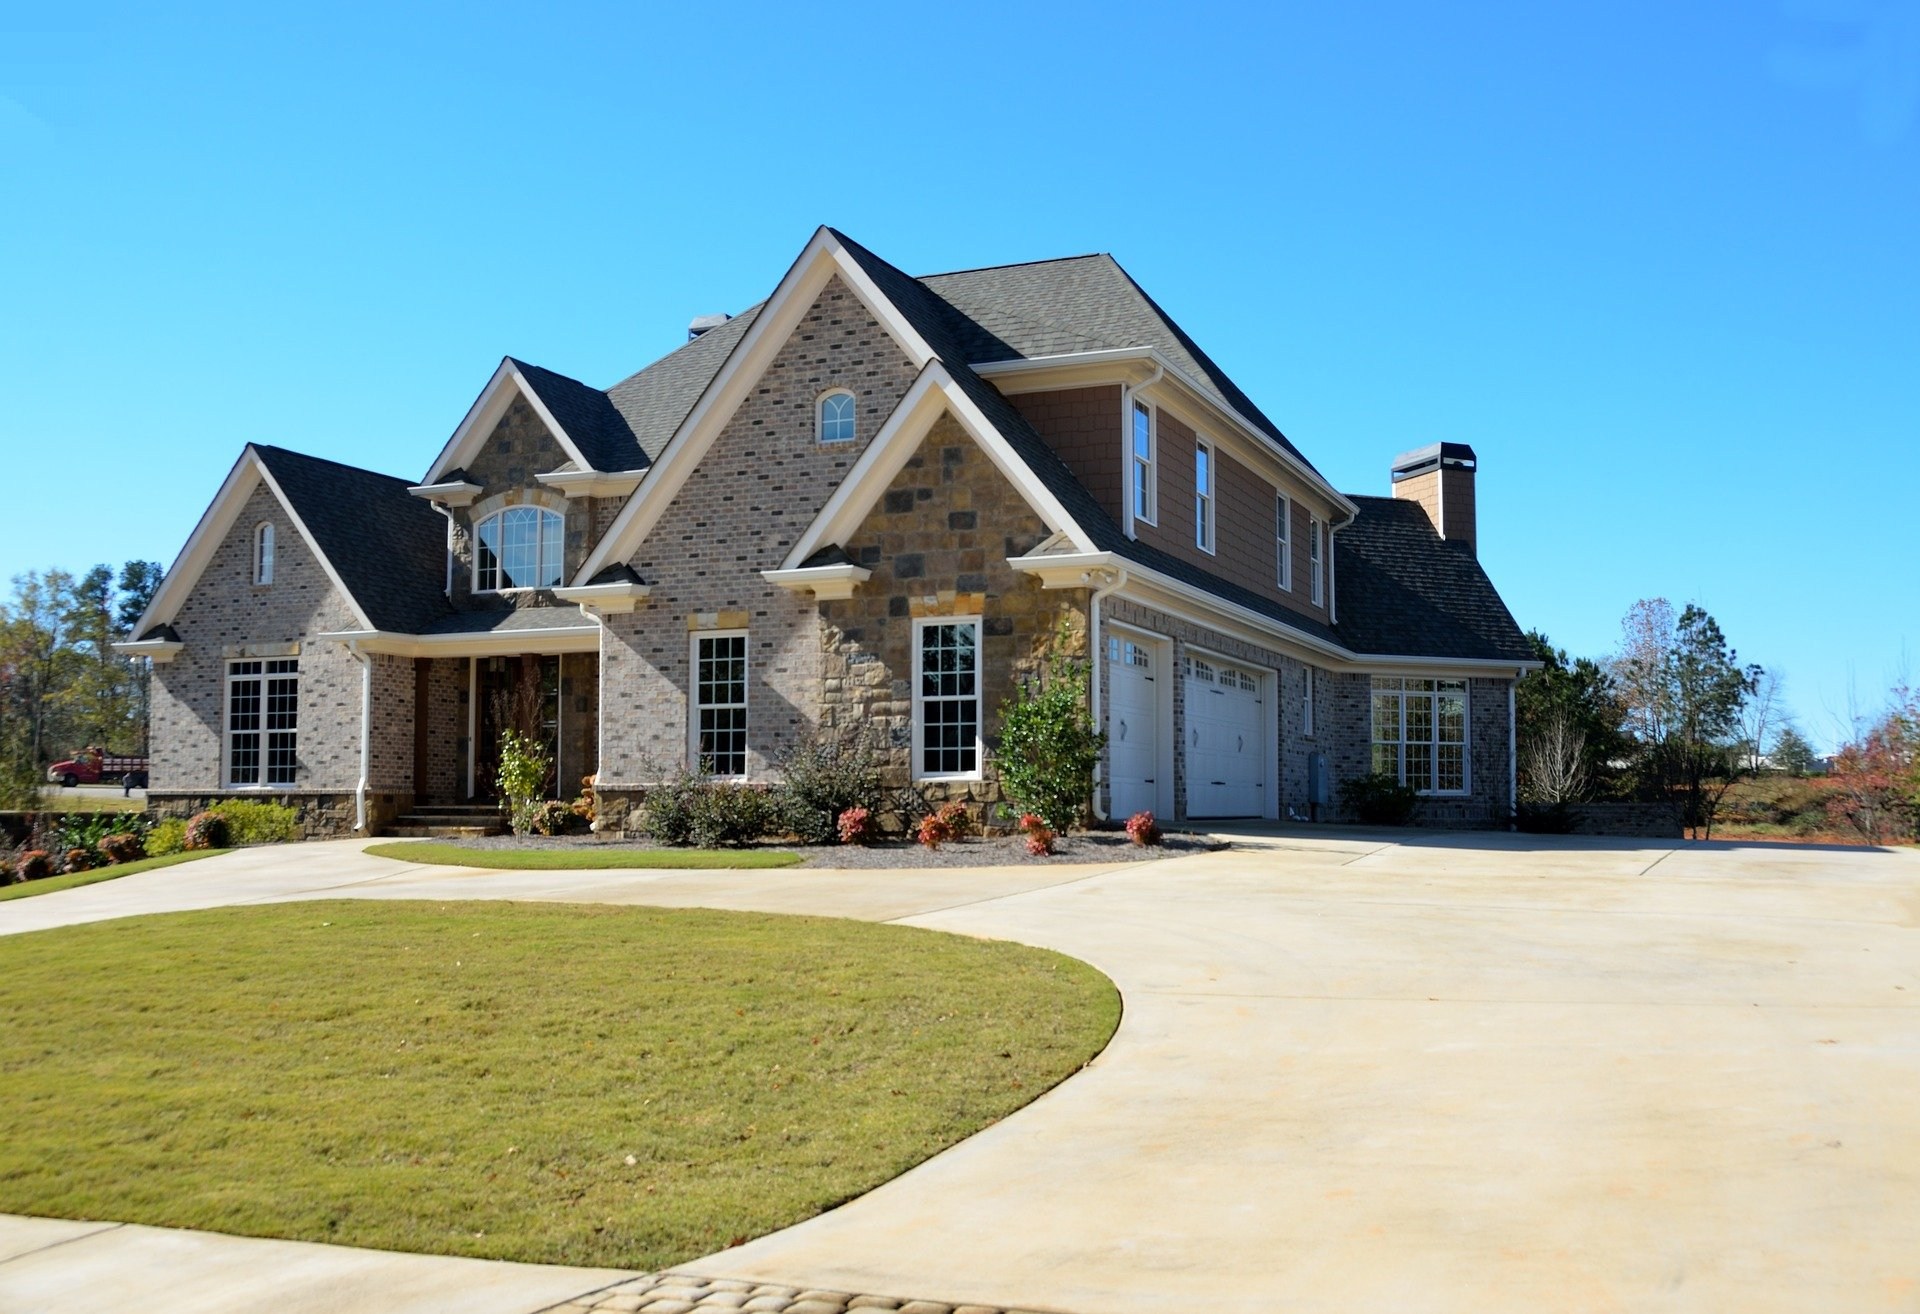 7 Exterior Designing Tips To Modernise Your House